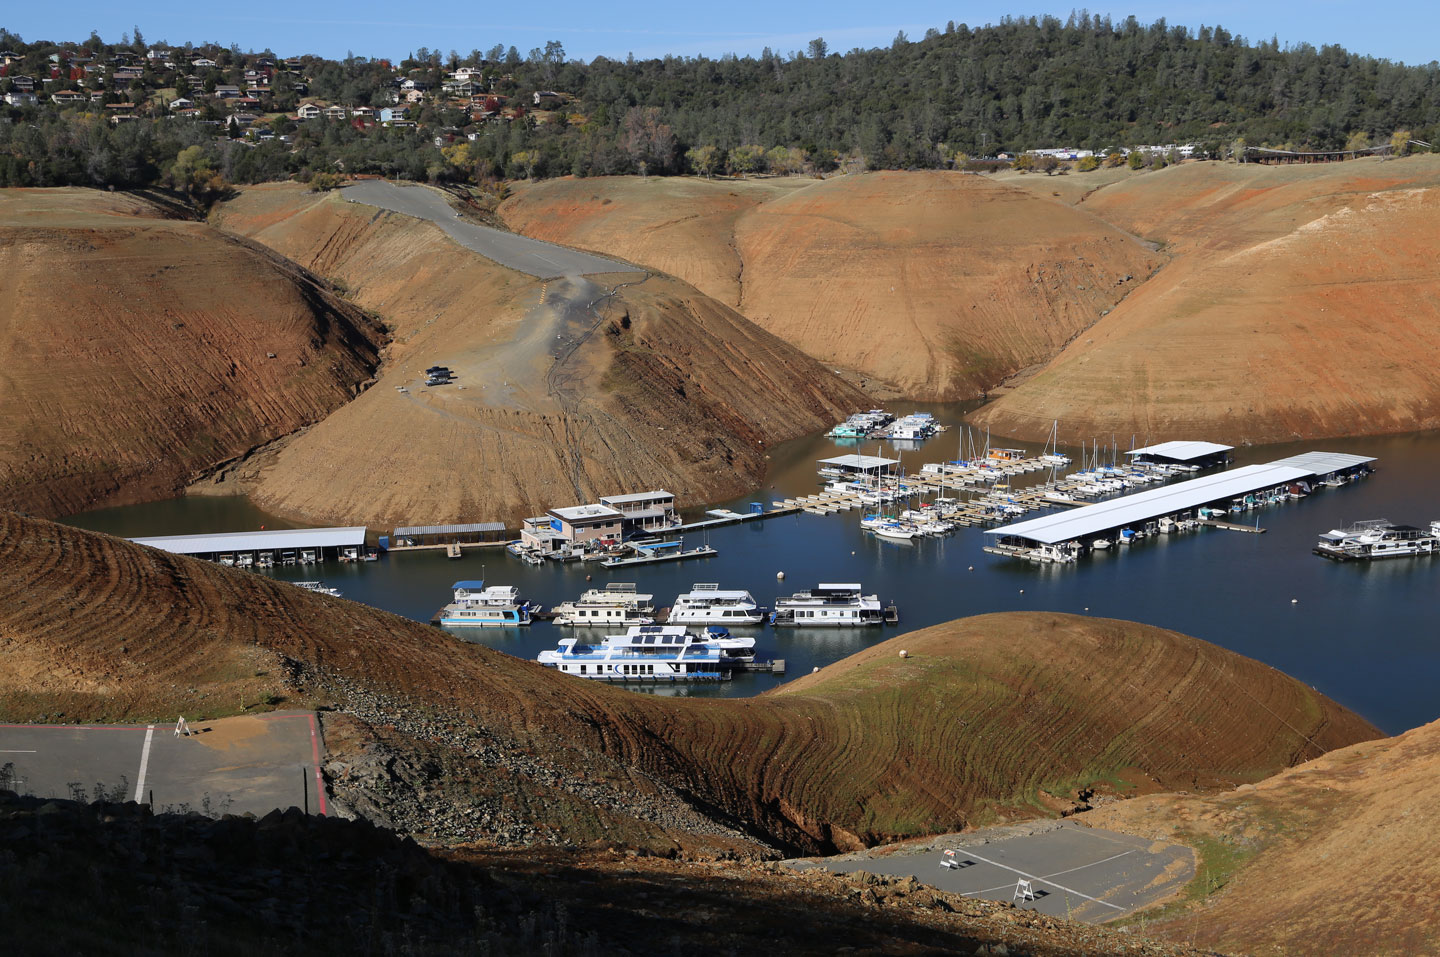 california river report At least 15 people have been killed, with the death toll expected to rise, after heavy rains caused a violent mudslide exacerbated by recent wildfire damage.